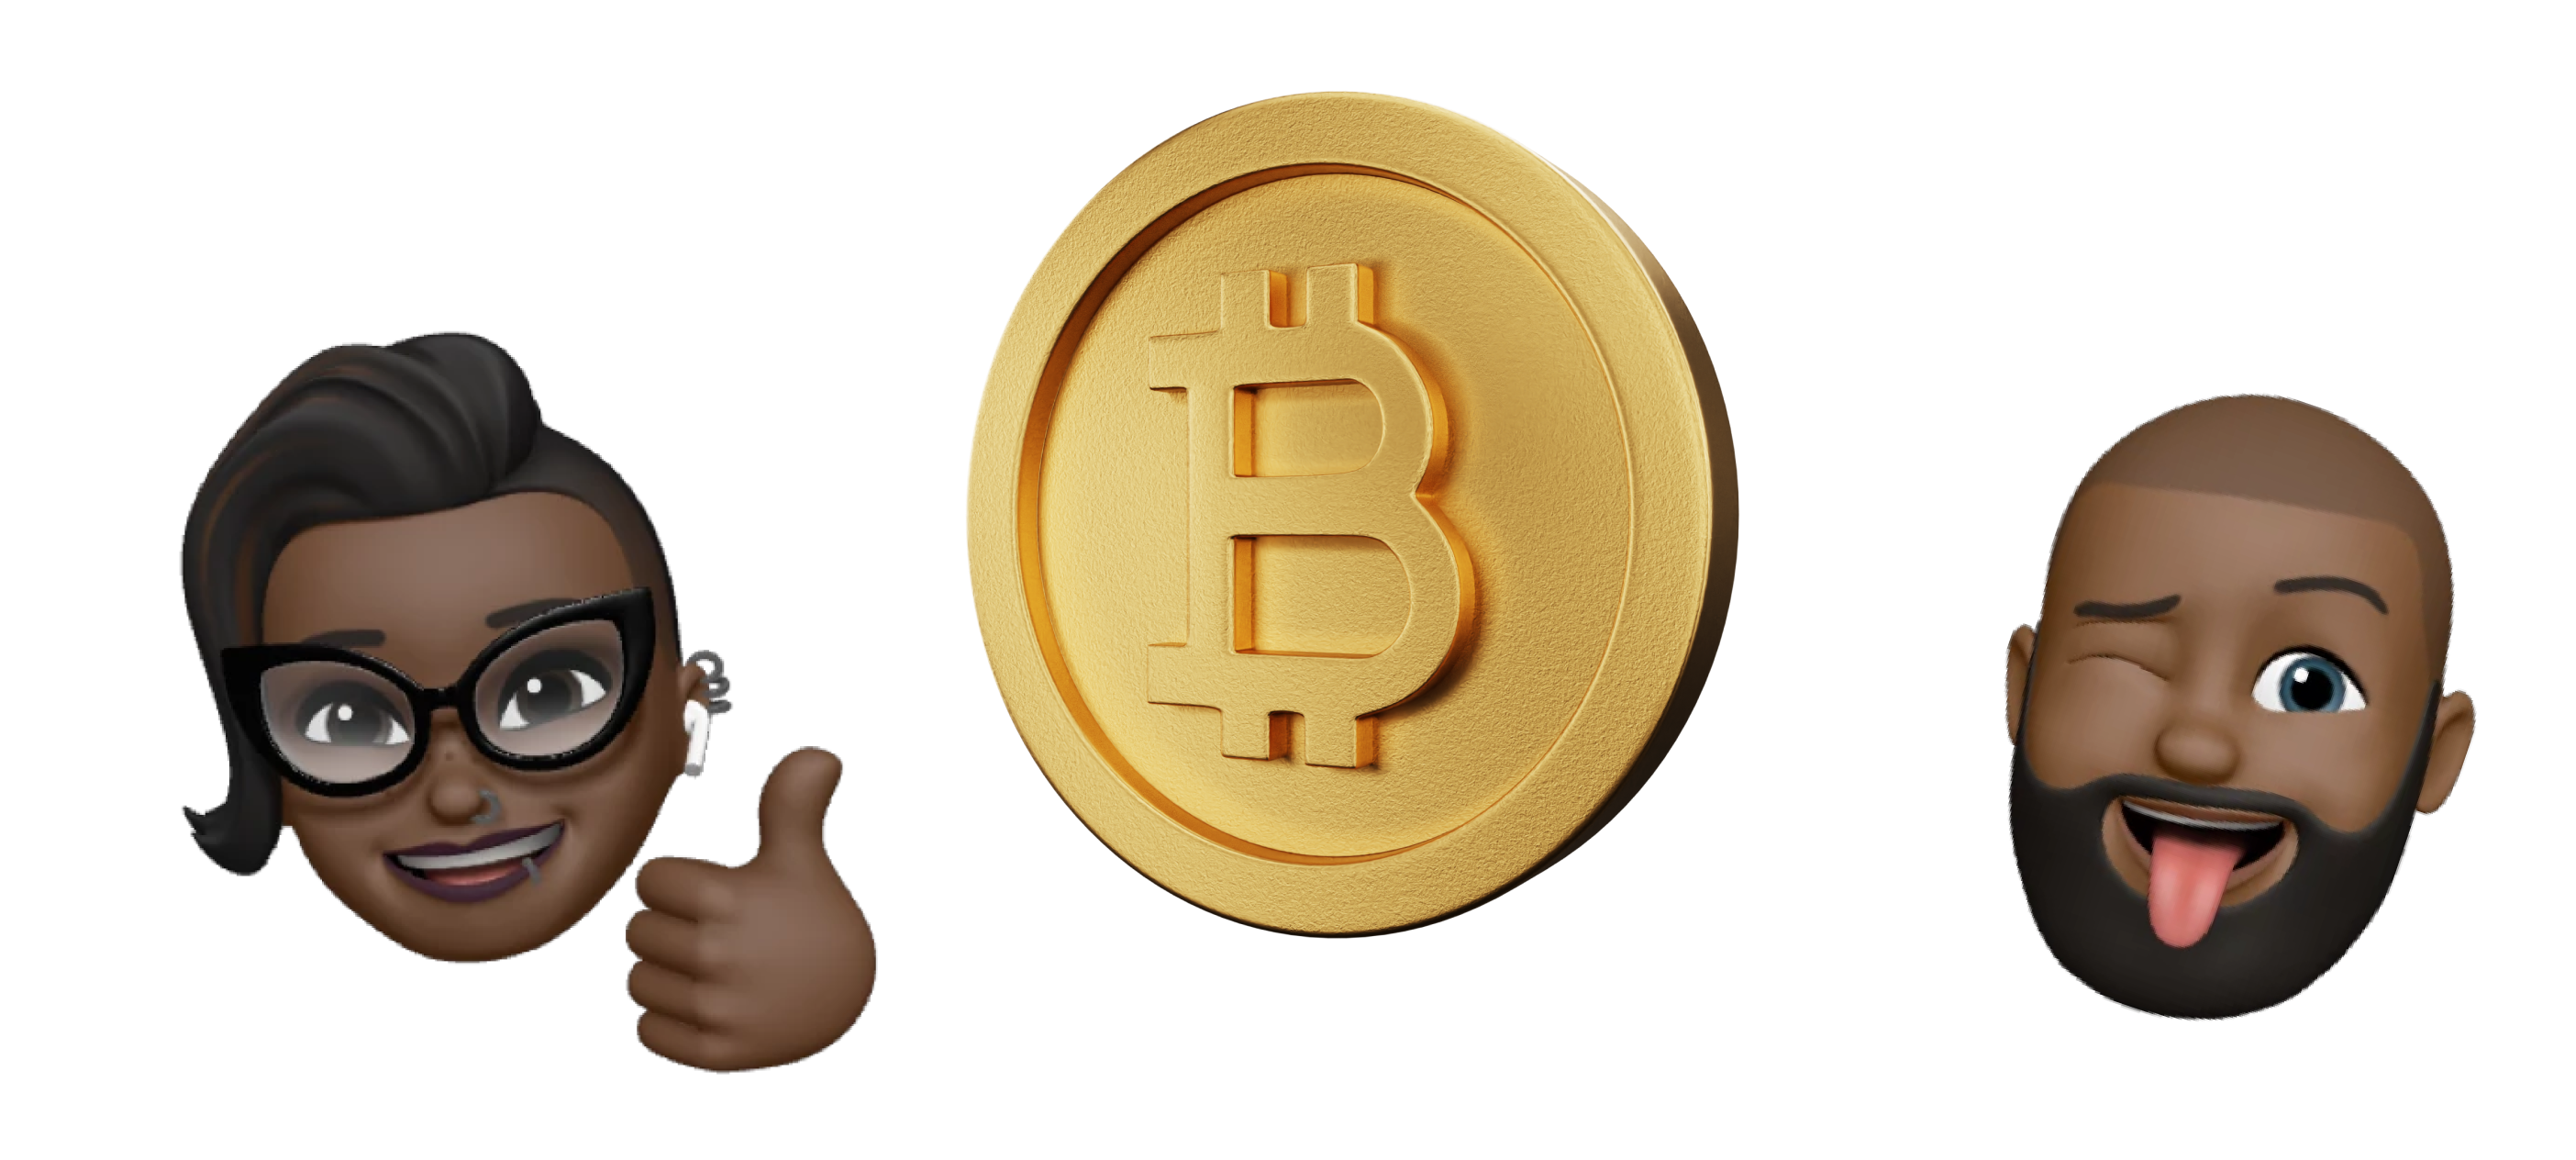 Thumbs up to Bitcoin and Crypto